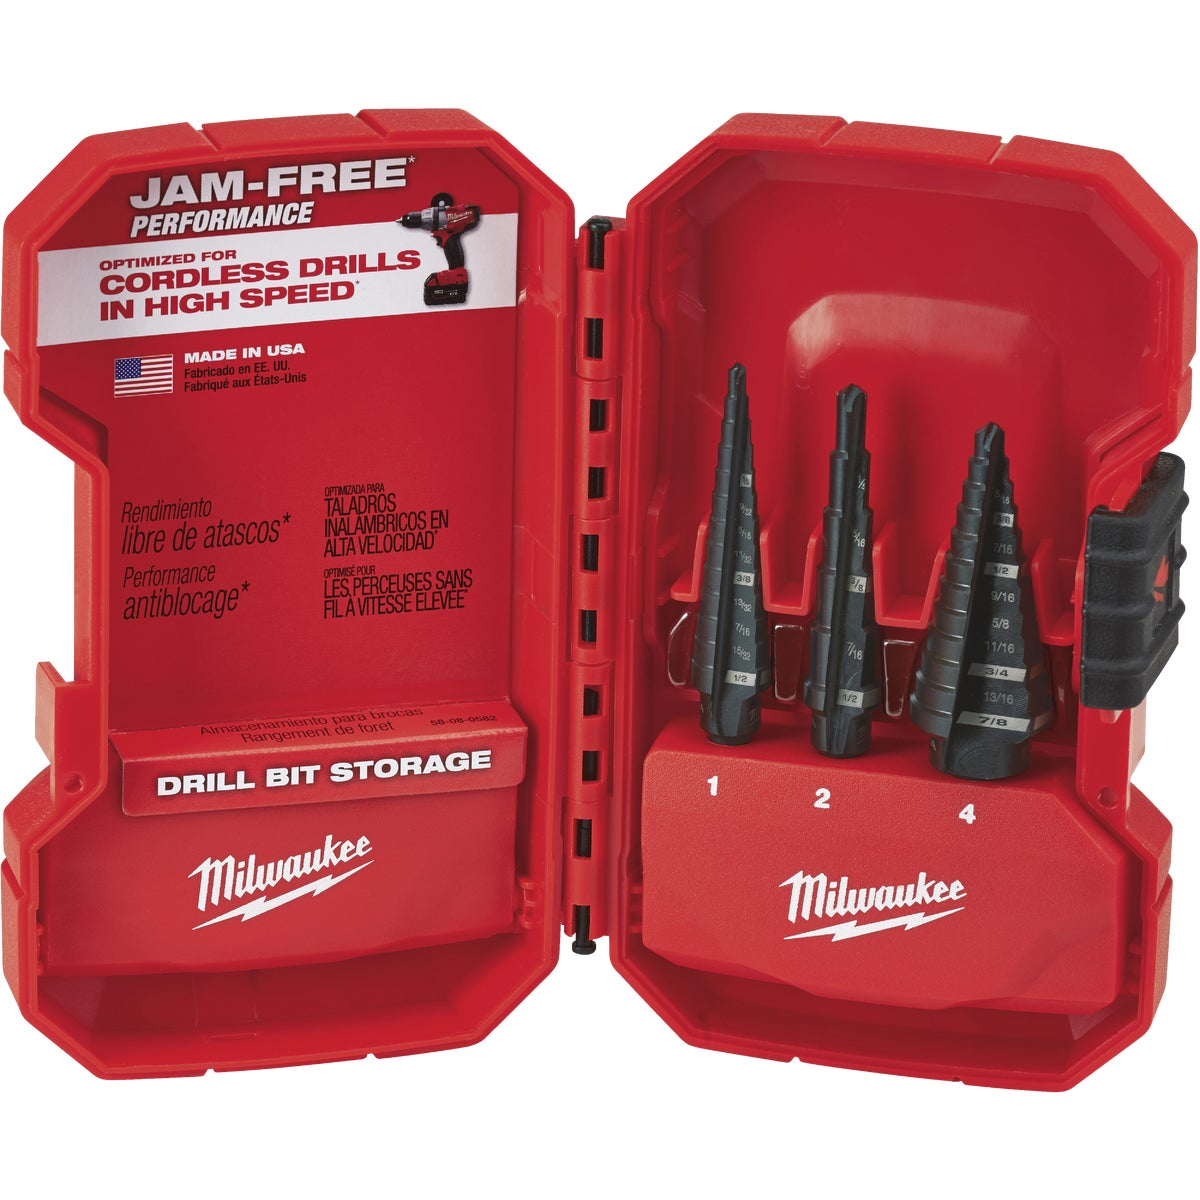 2PC STEP DRILL BIT SET - 48899050 by Milwaukee Accessory